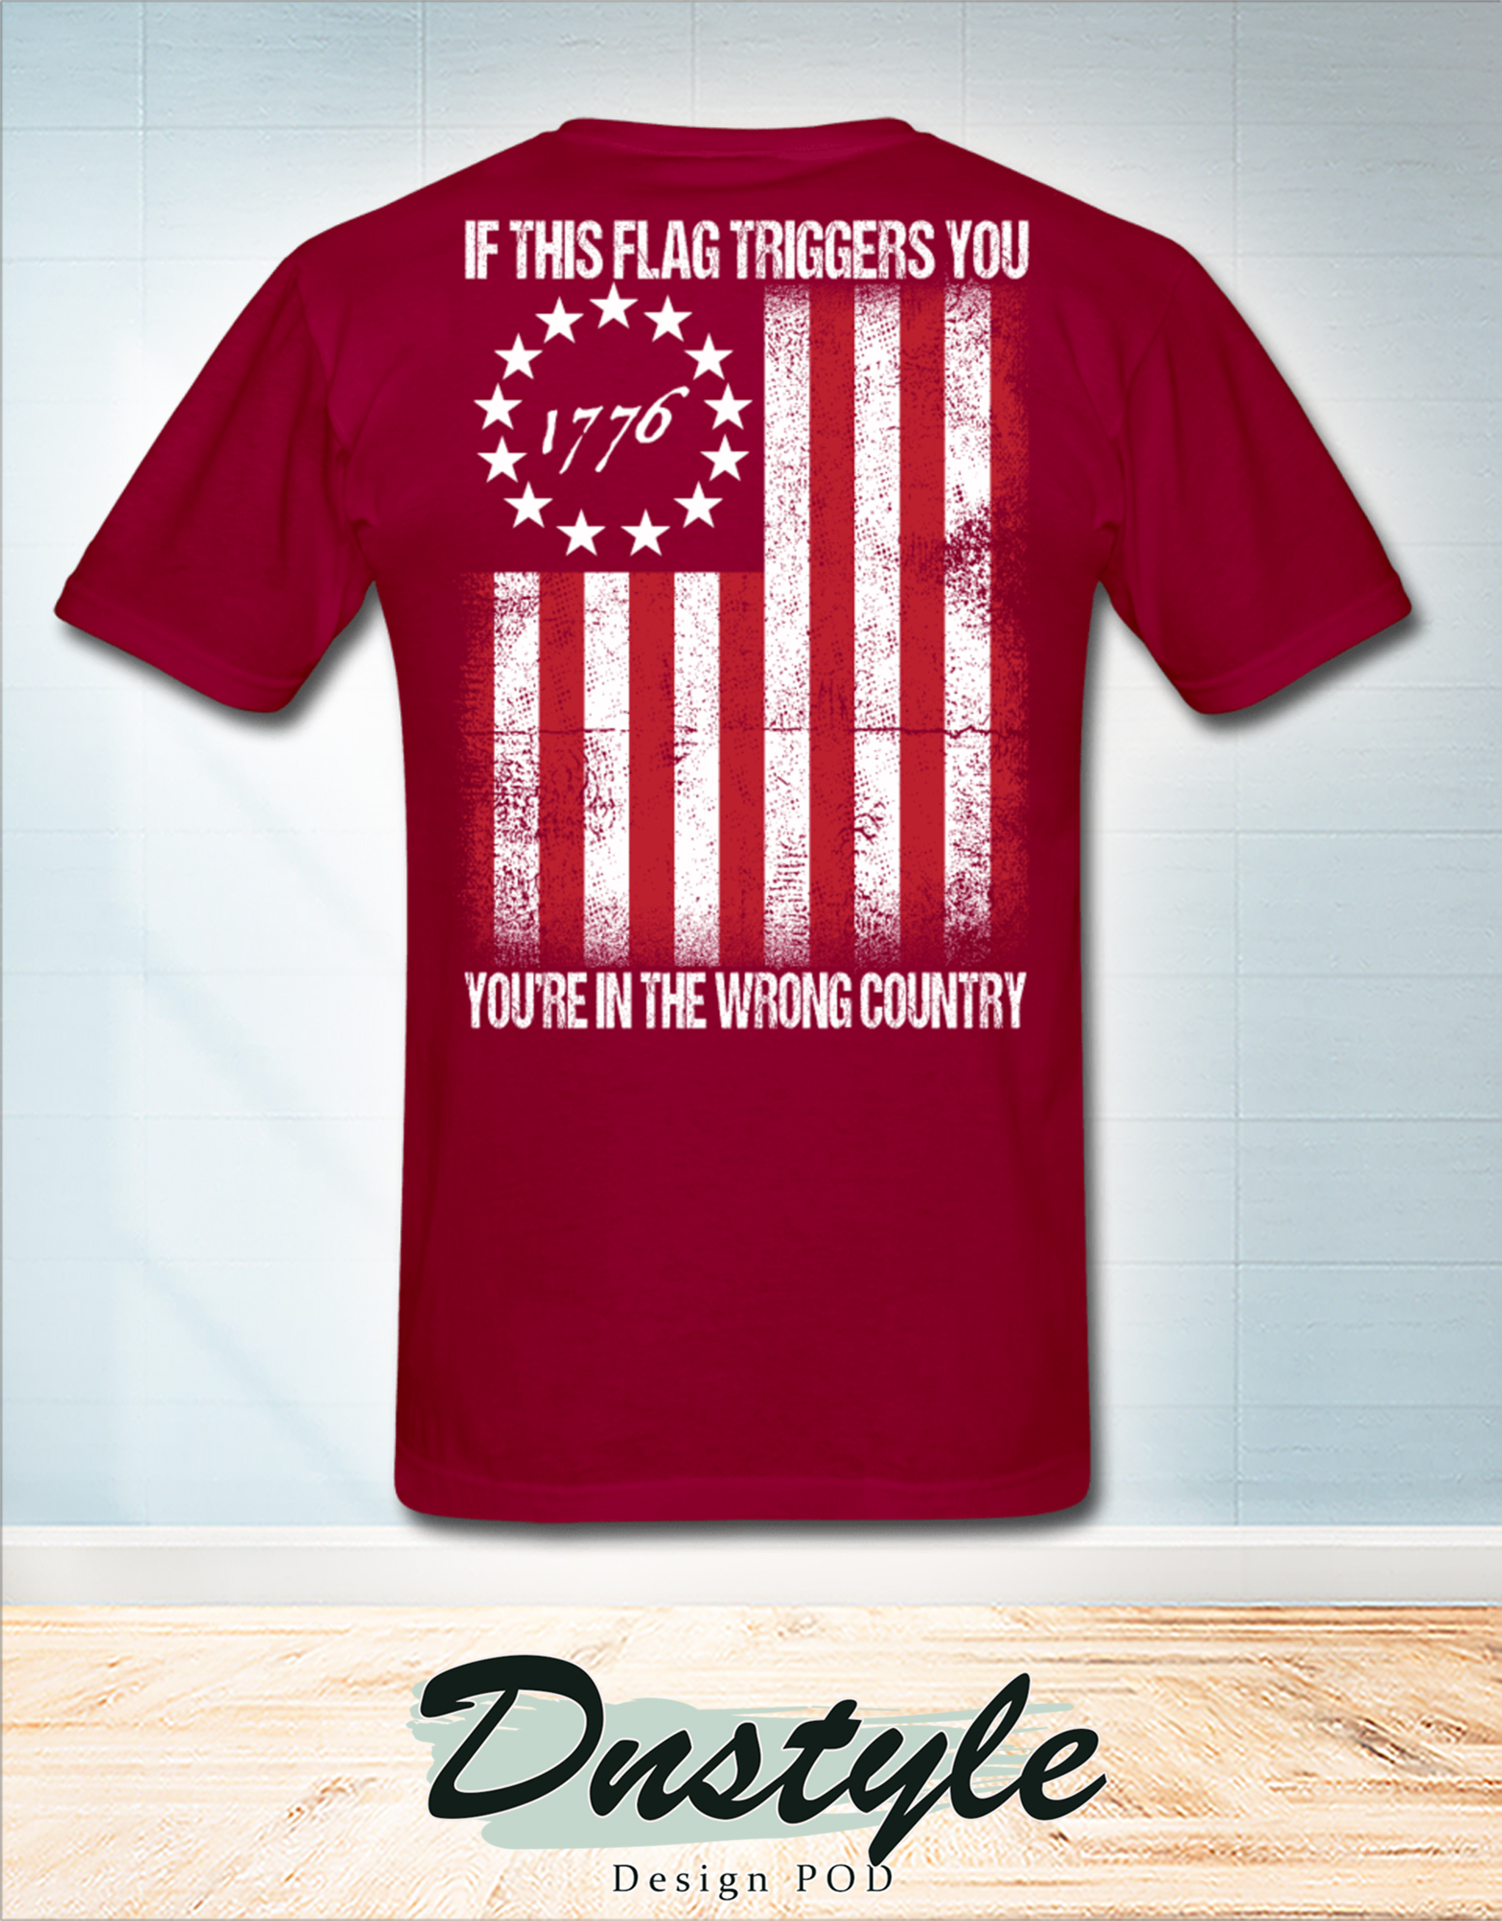 1776 if this flag trigged you you're in the wrong country american flag t-shirt 1